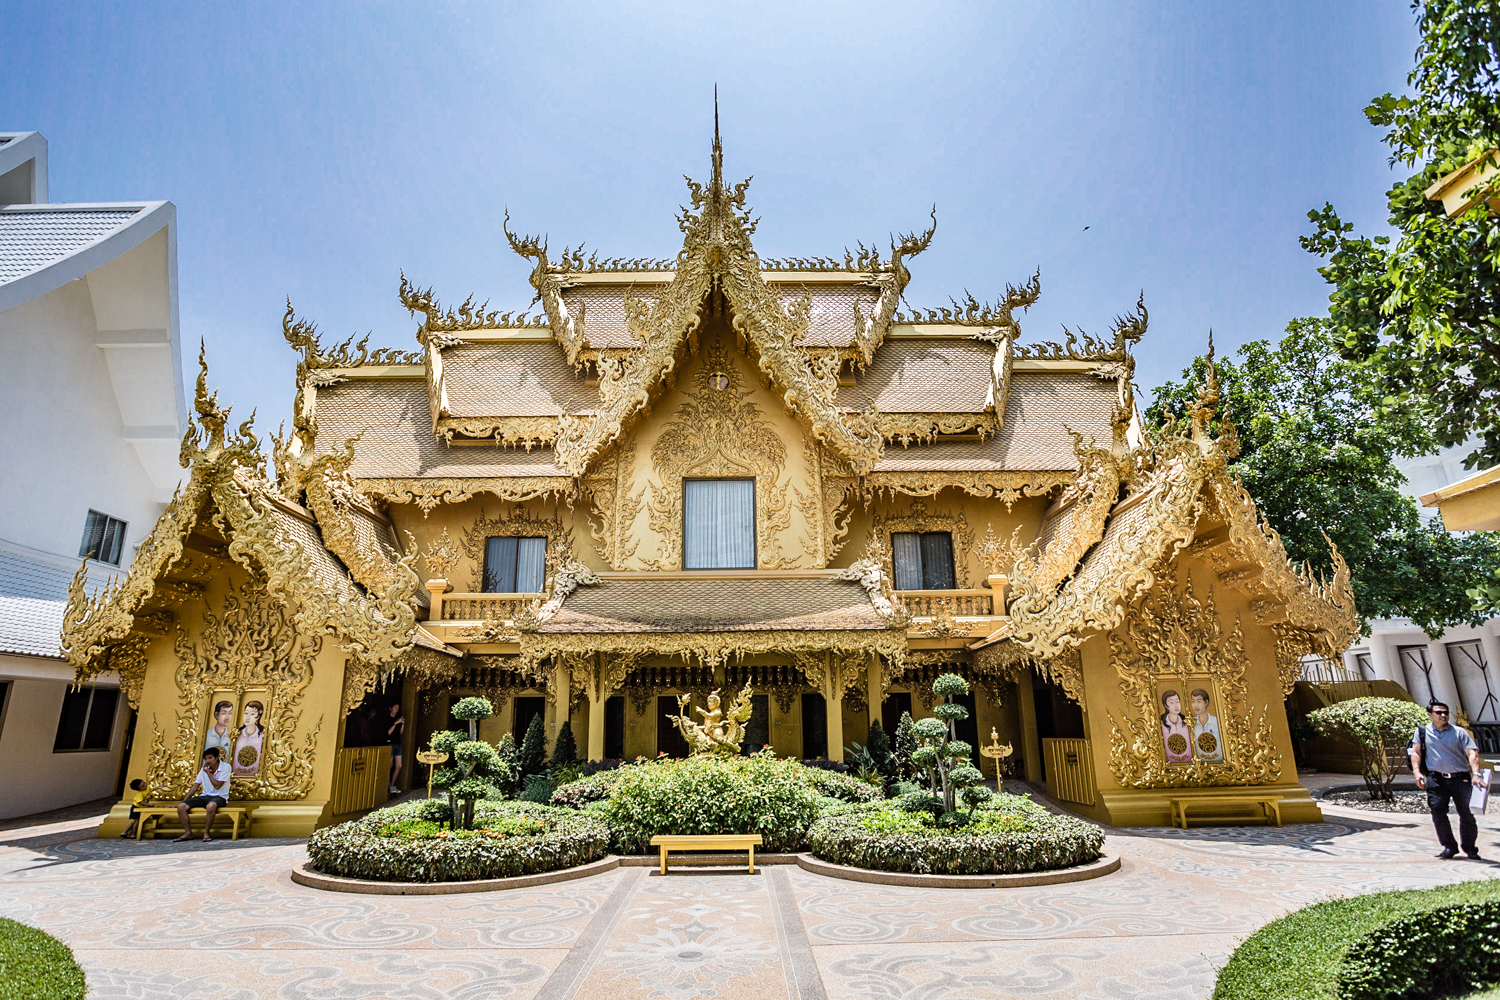 No visit to Wat Rong Khun would be complete without going into the golden building, probably the world's nicest bathrooms.